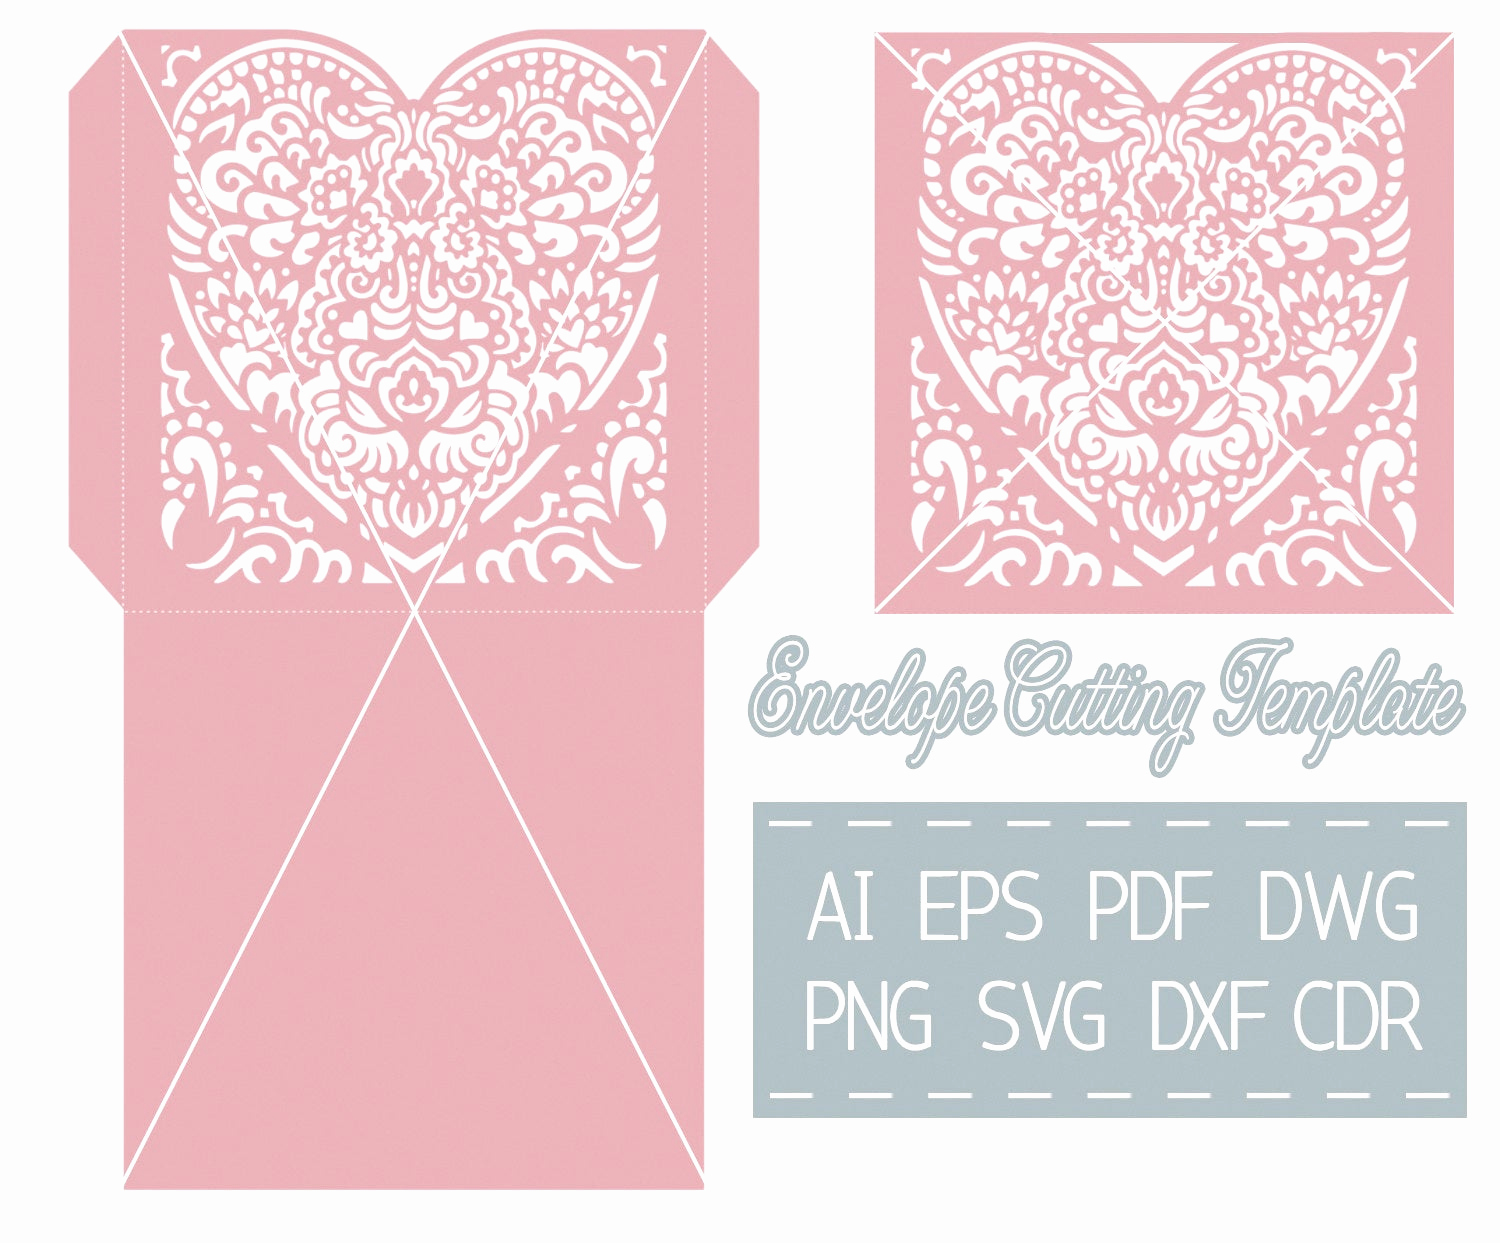 Wedding Invitation Envelopes Templates Lovely Wedding Invitation Envelope Template Cutting File Svg Cdr